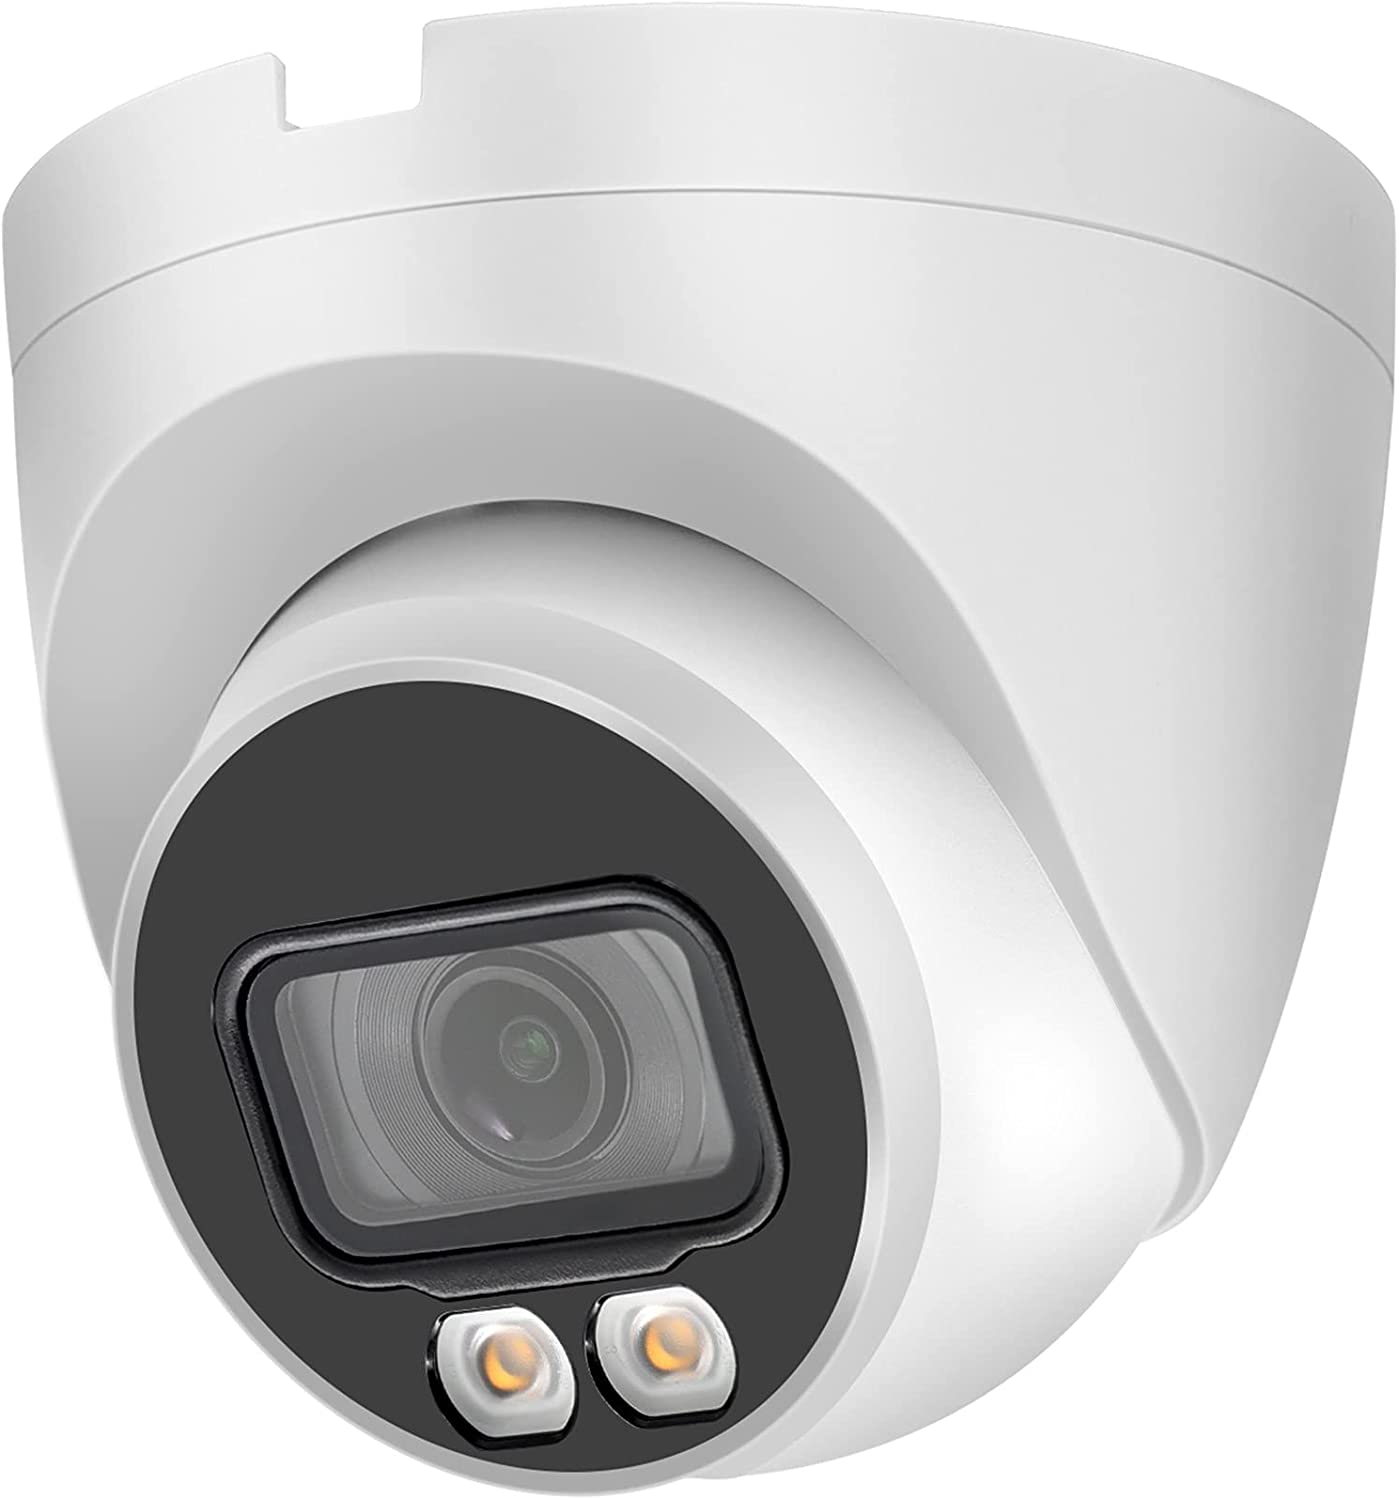 4MP Full Color Night Vision Security IP Camera Outdoor with Mic/Audio, Poe Surveillance Camera with Smart IVS , Micro SD Recording,IP67 ,H.265+,WDR,3D DNR,2.8mm Lens, 4MP@30fps